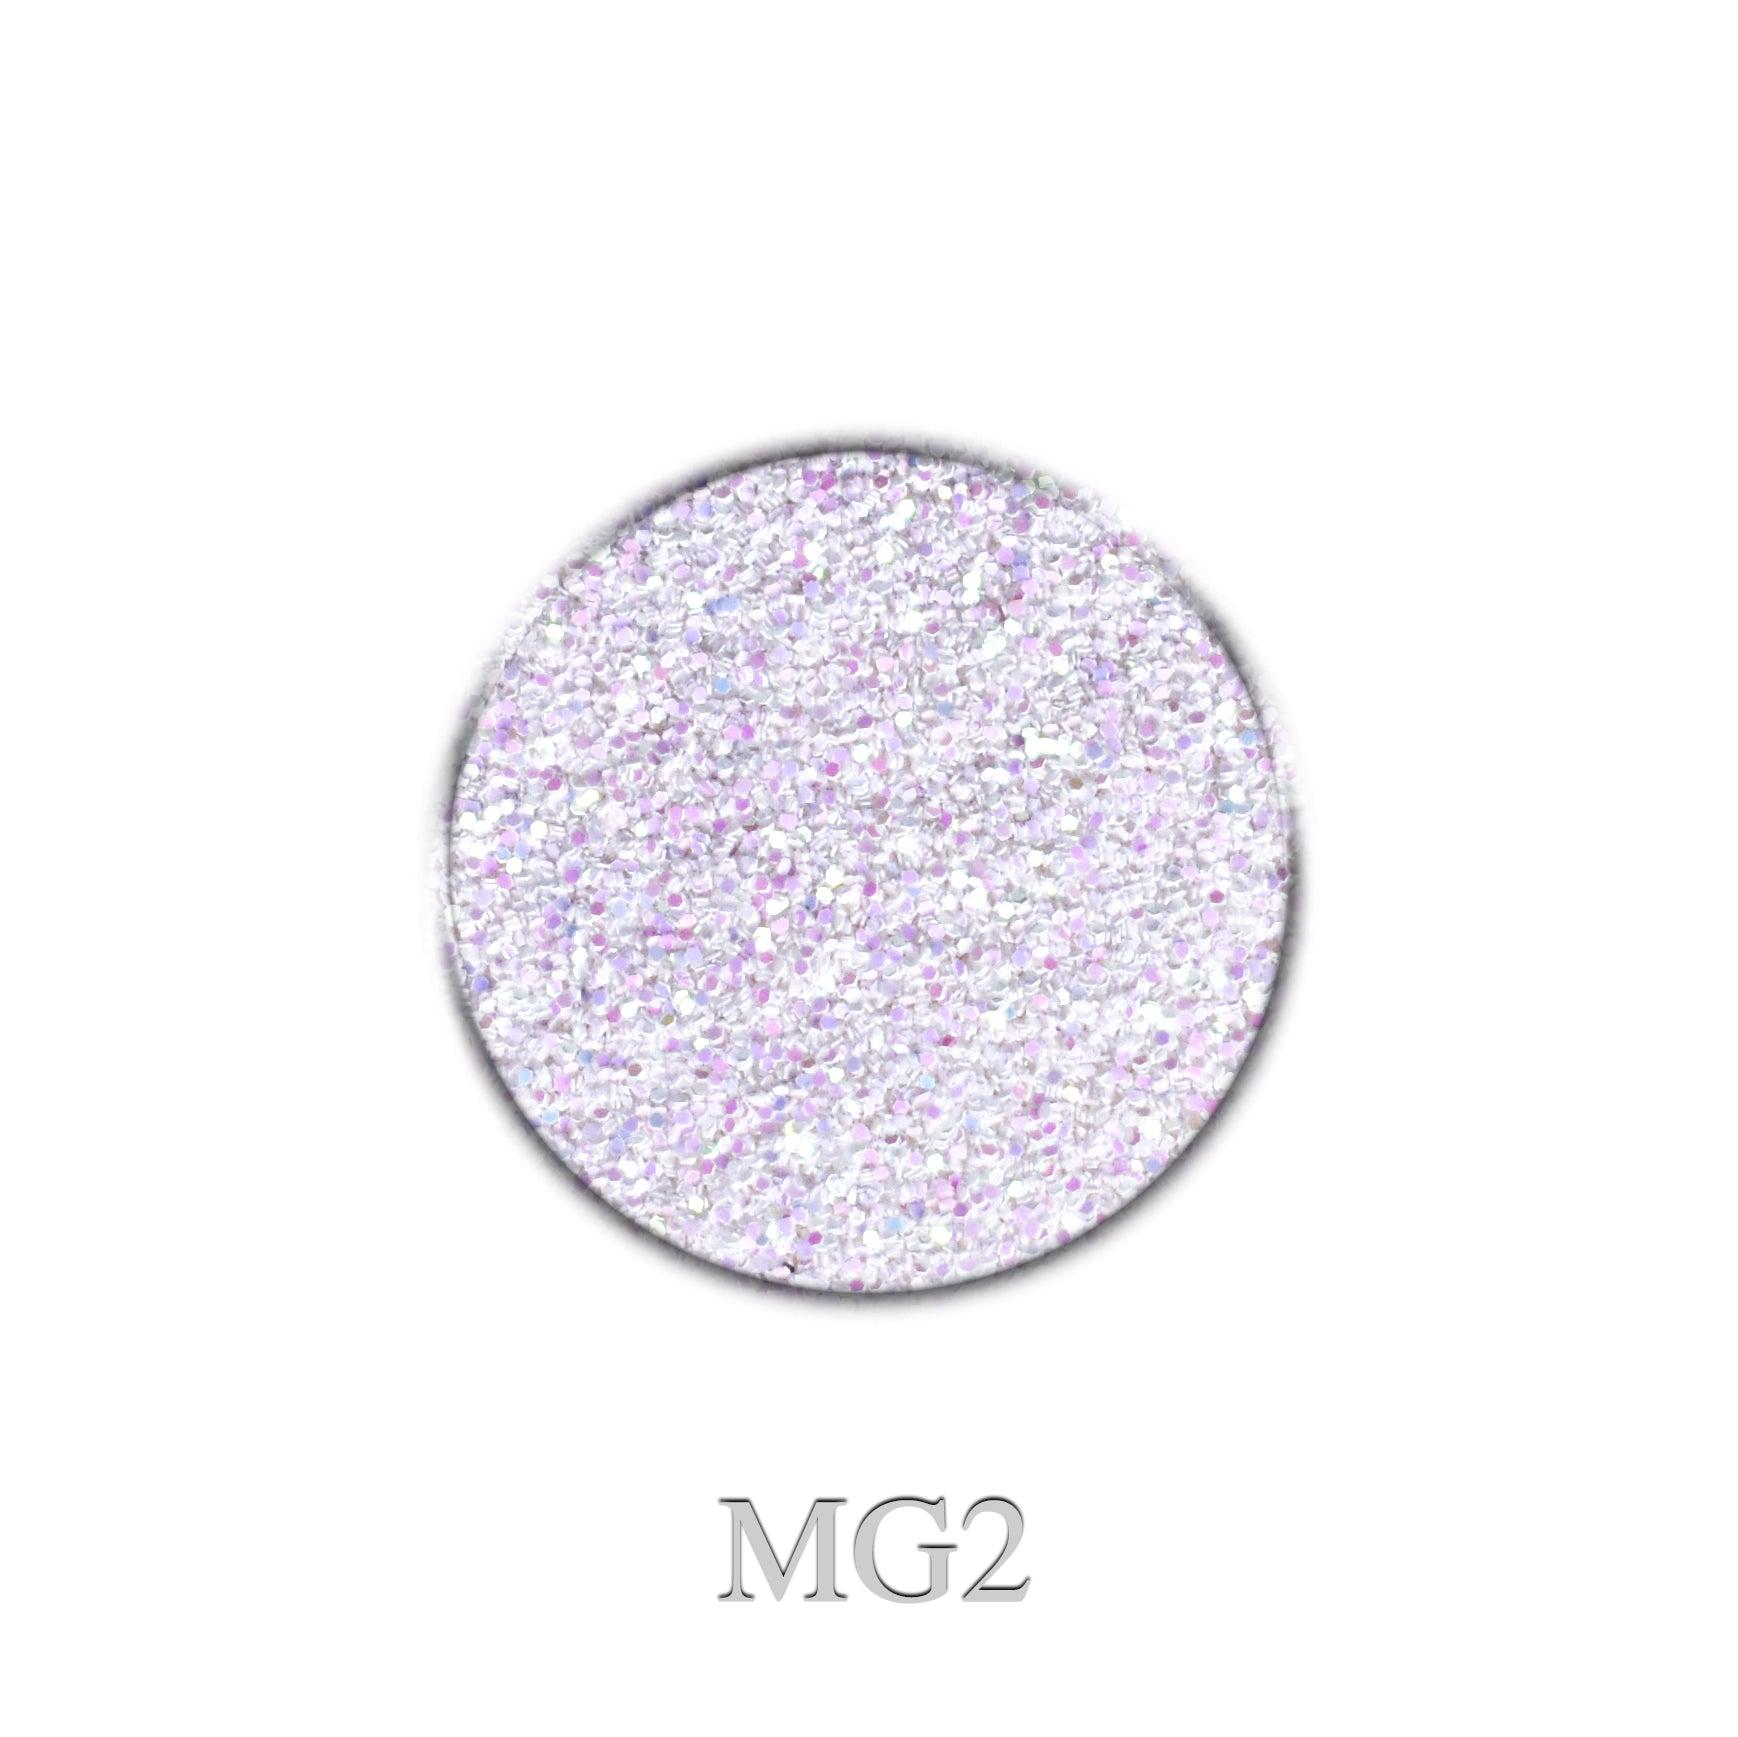 Mermaid Glitter MG2